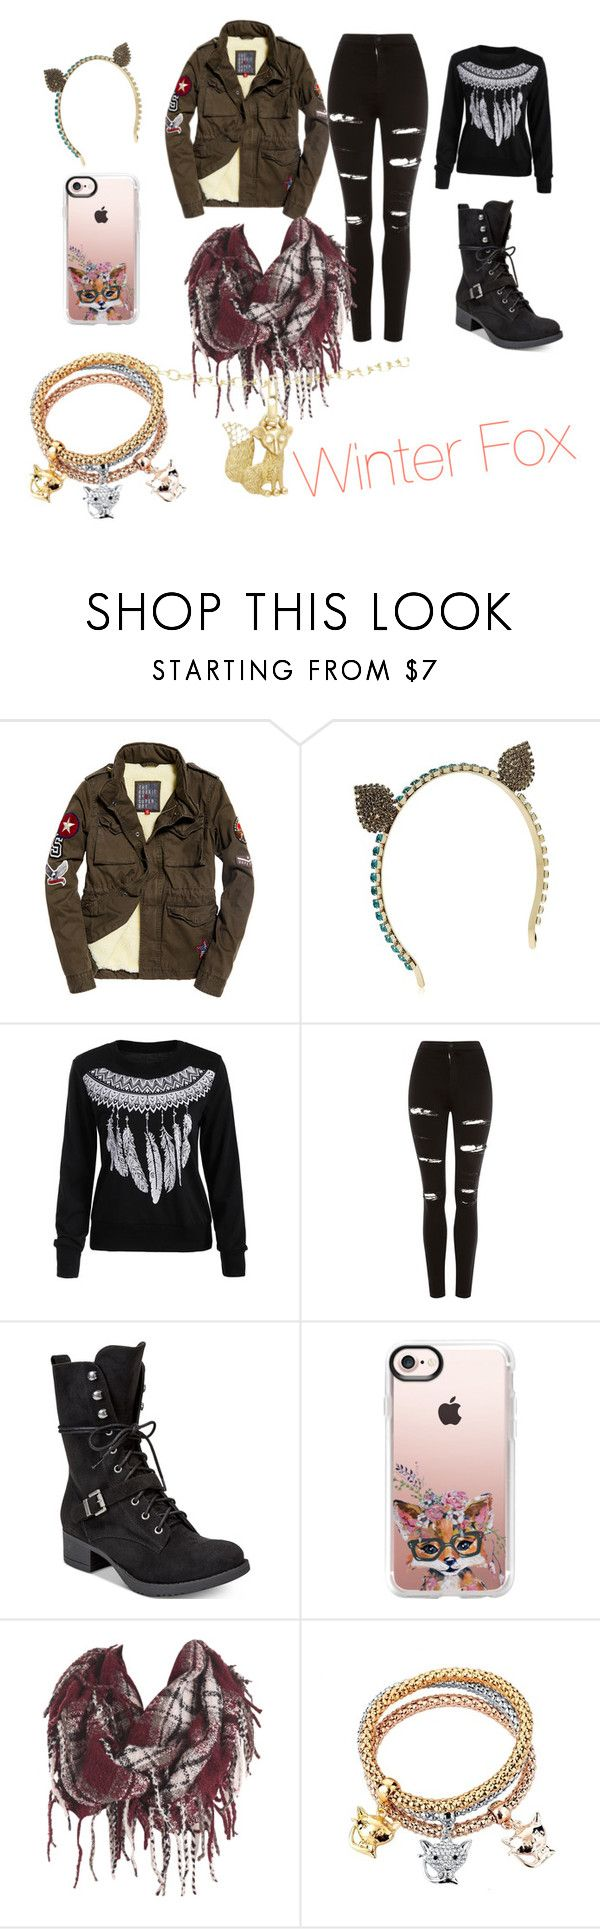 """Winter Fox"" by tigerlily-ds on Polyvore featuring Vittorio Ceccoli, Topshop, American Rag Cie, Casetify and Temple St. Clair"